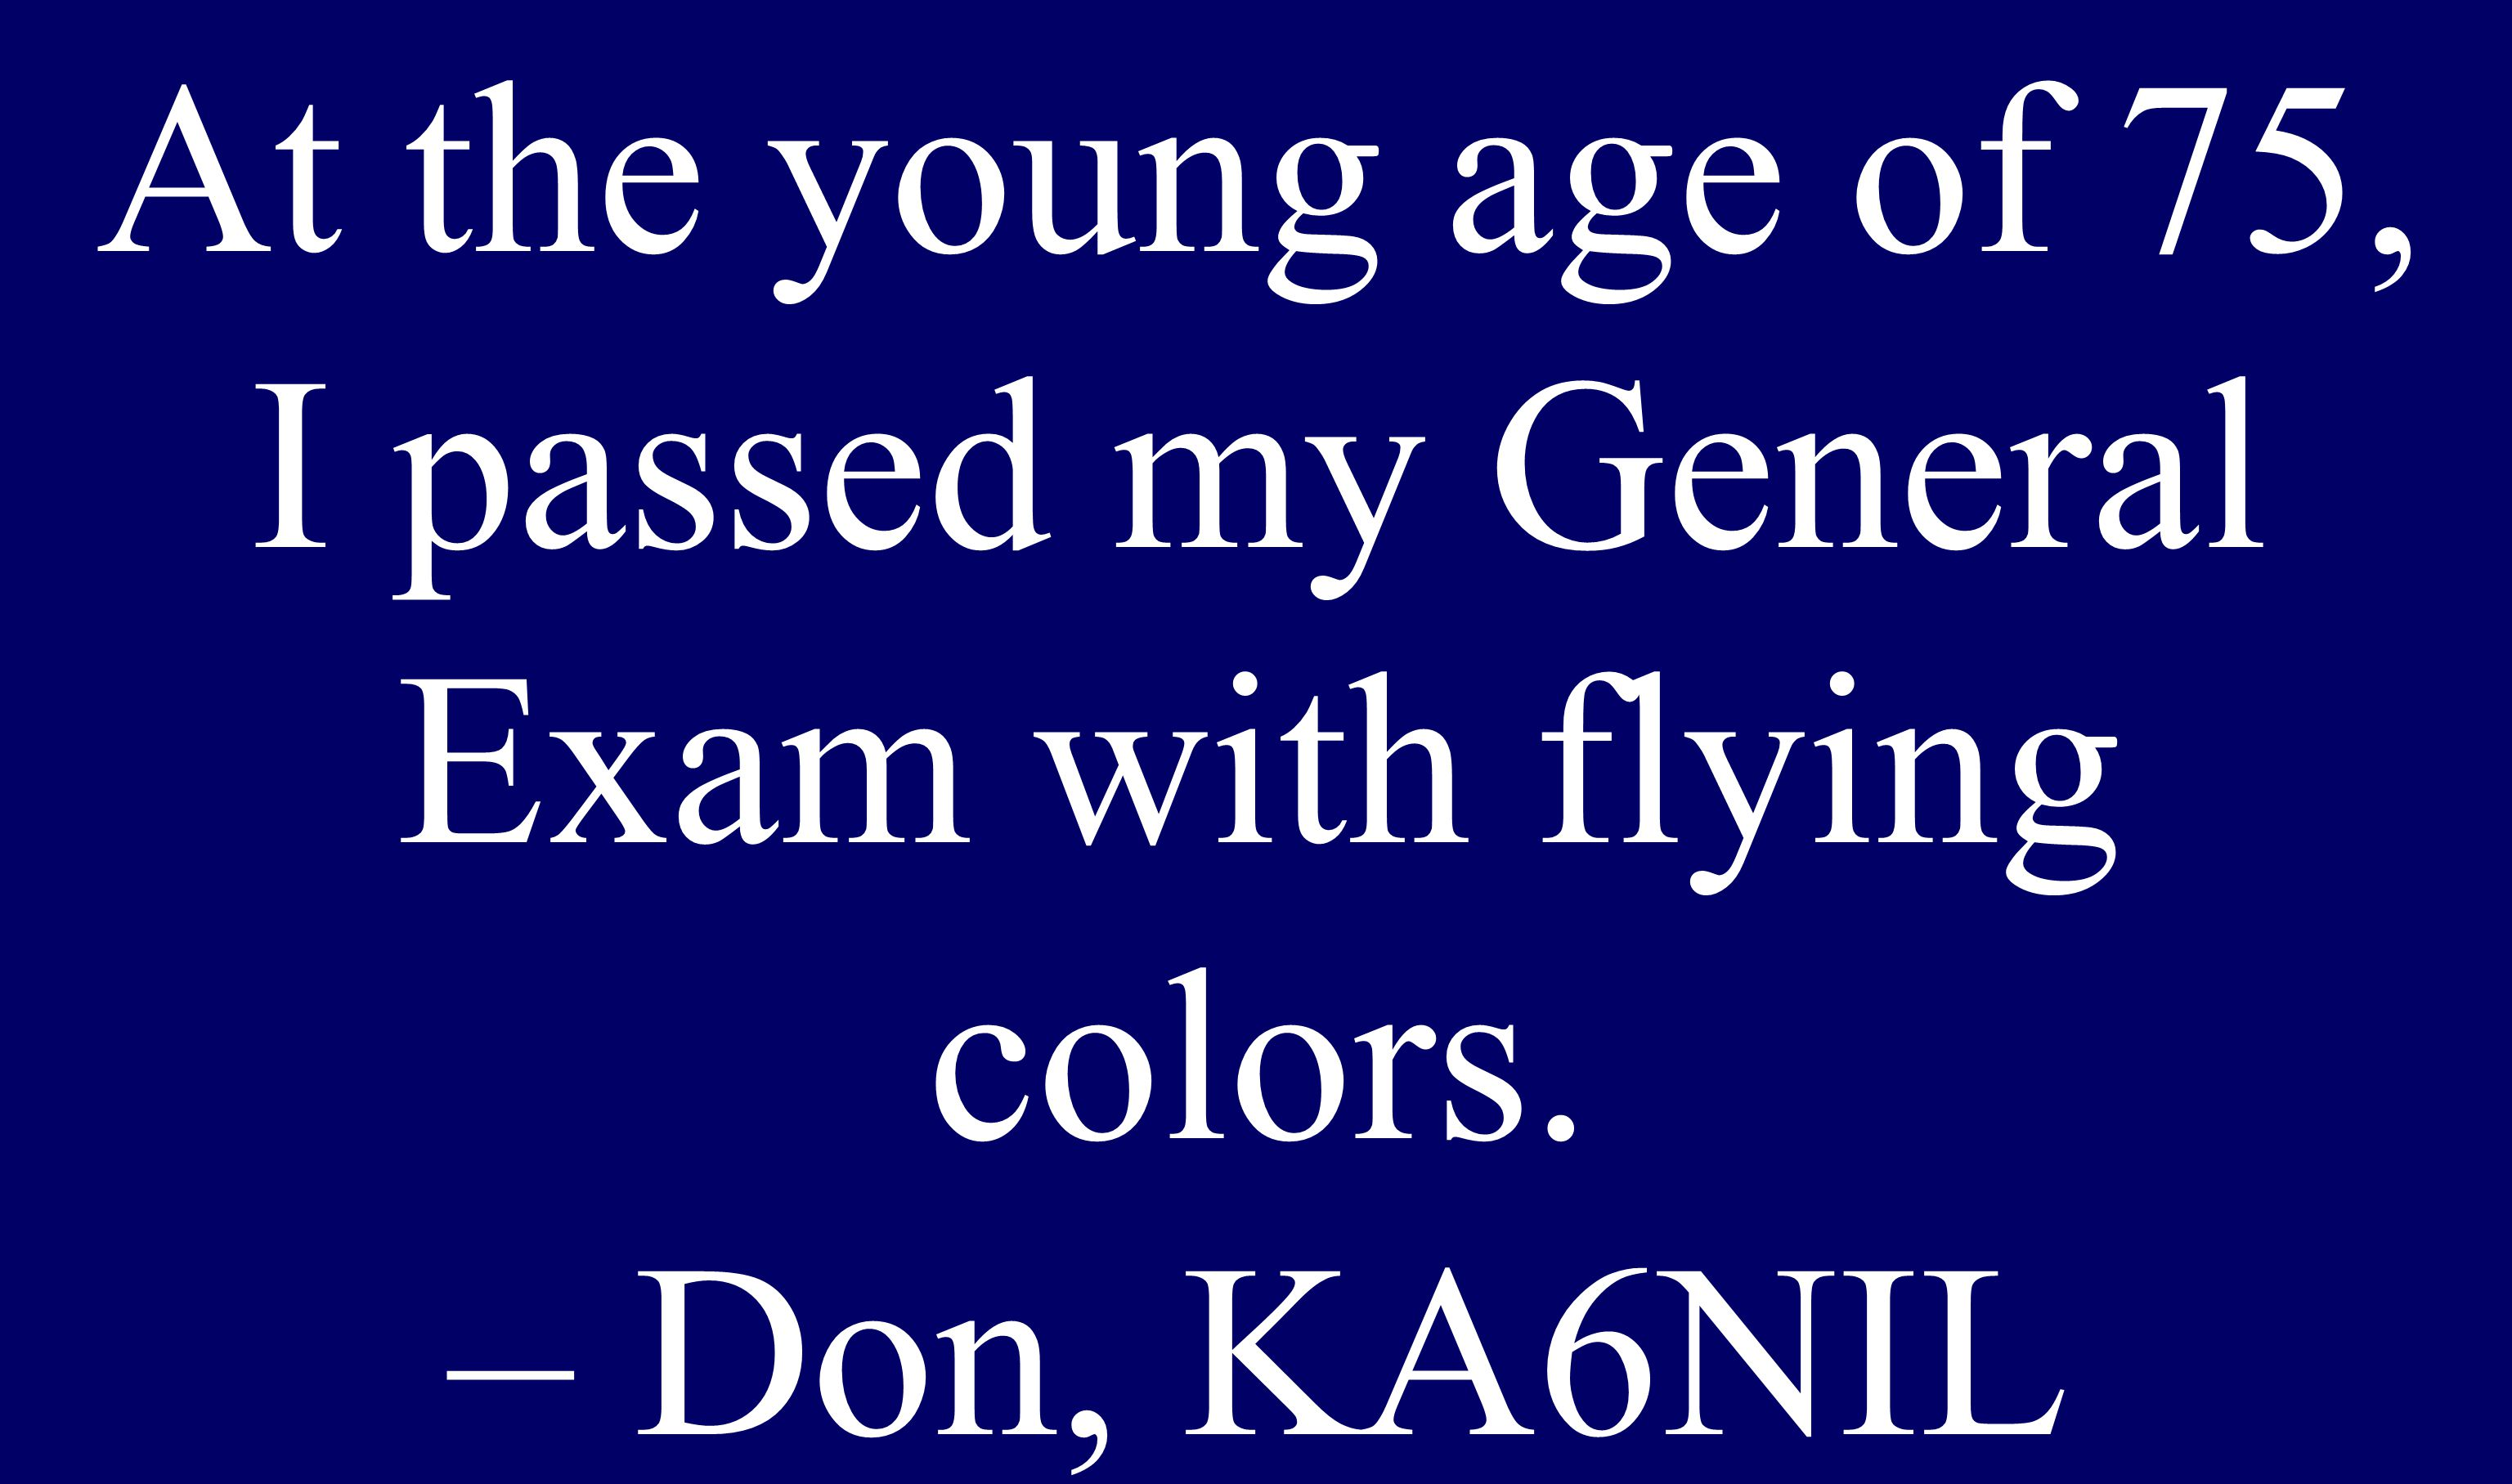 At the young age of 75, I passed my General Exam with flying colors. – Don, KA6NIL